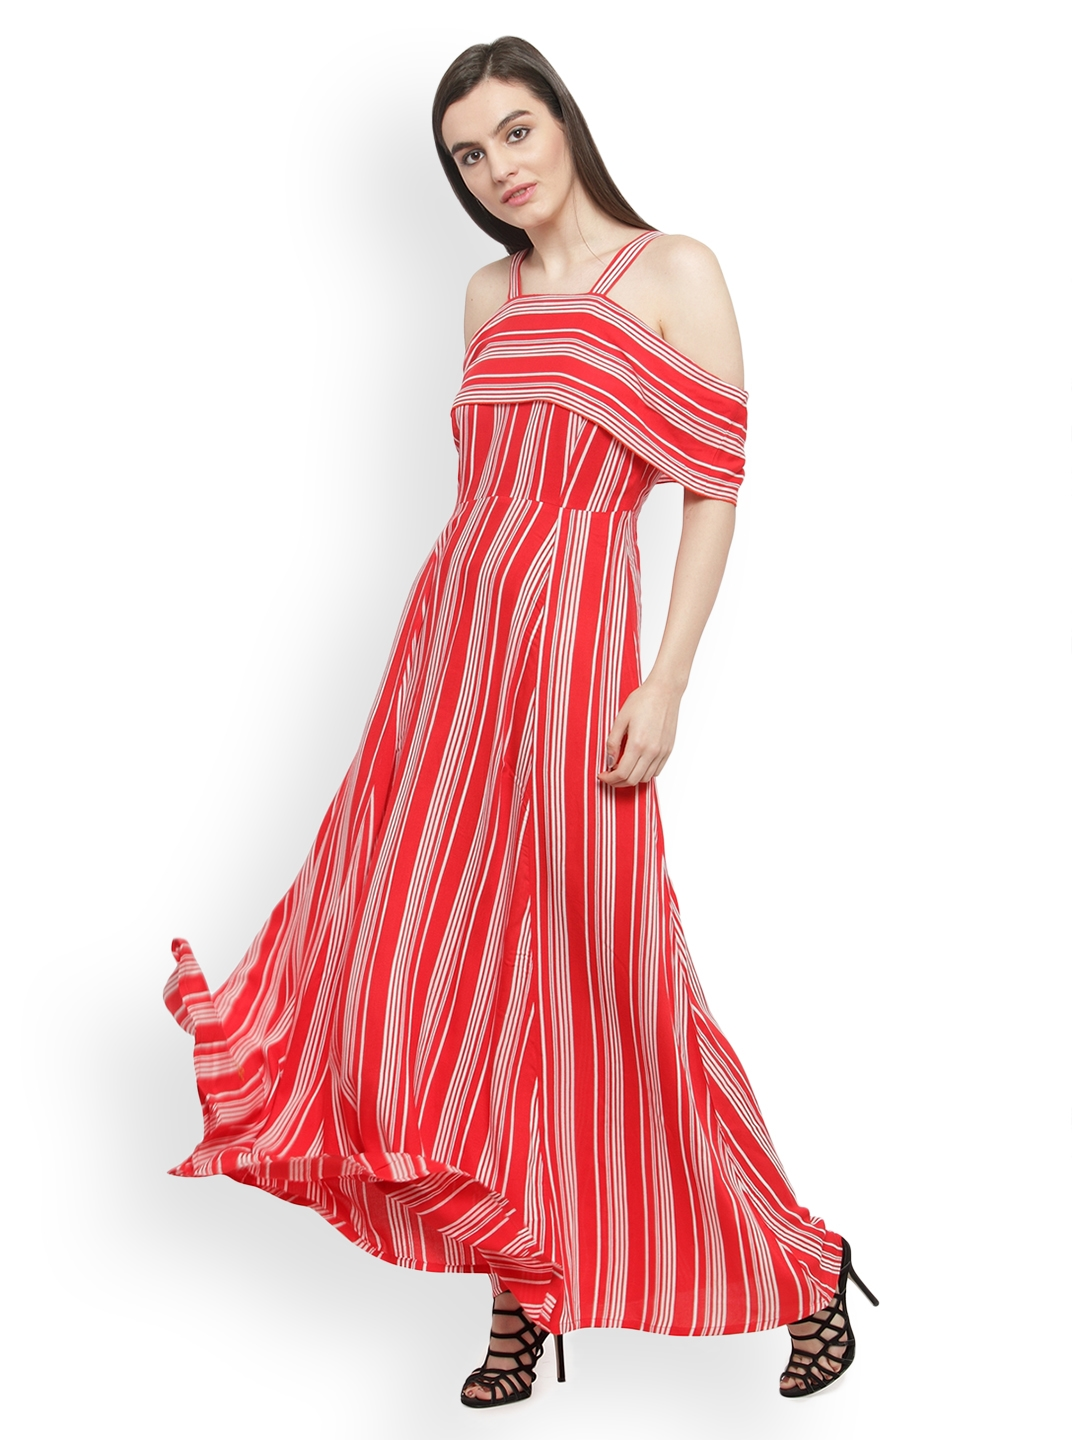 187f14a5f96 Buy PlusS Women Red   White Striped Maxi Dress - Dresses for Women ...